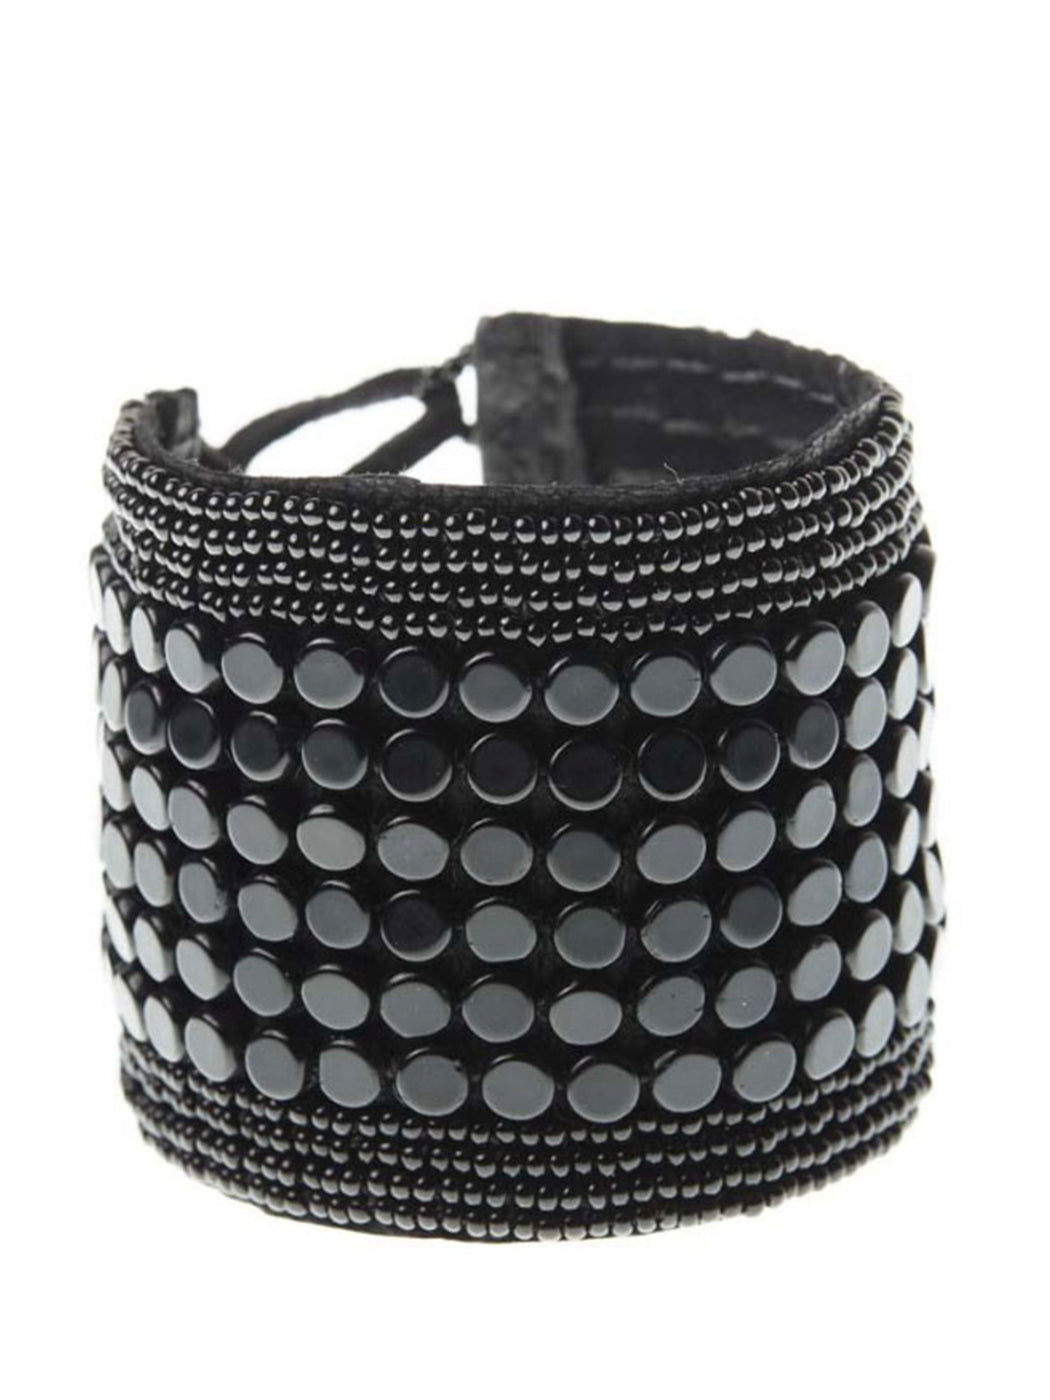 Sidai Leather Sipolio Multi Bracelet Cuff - BLACK/BLACK